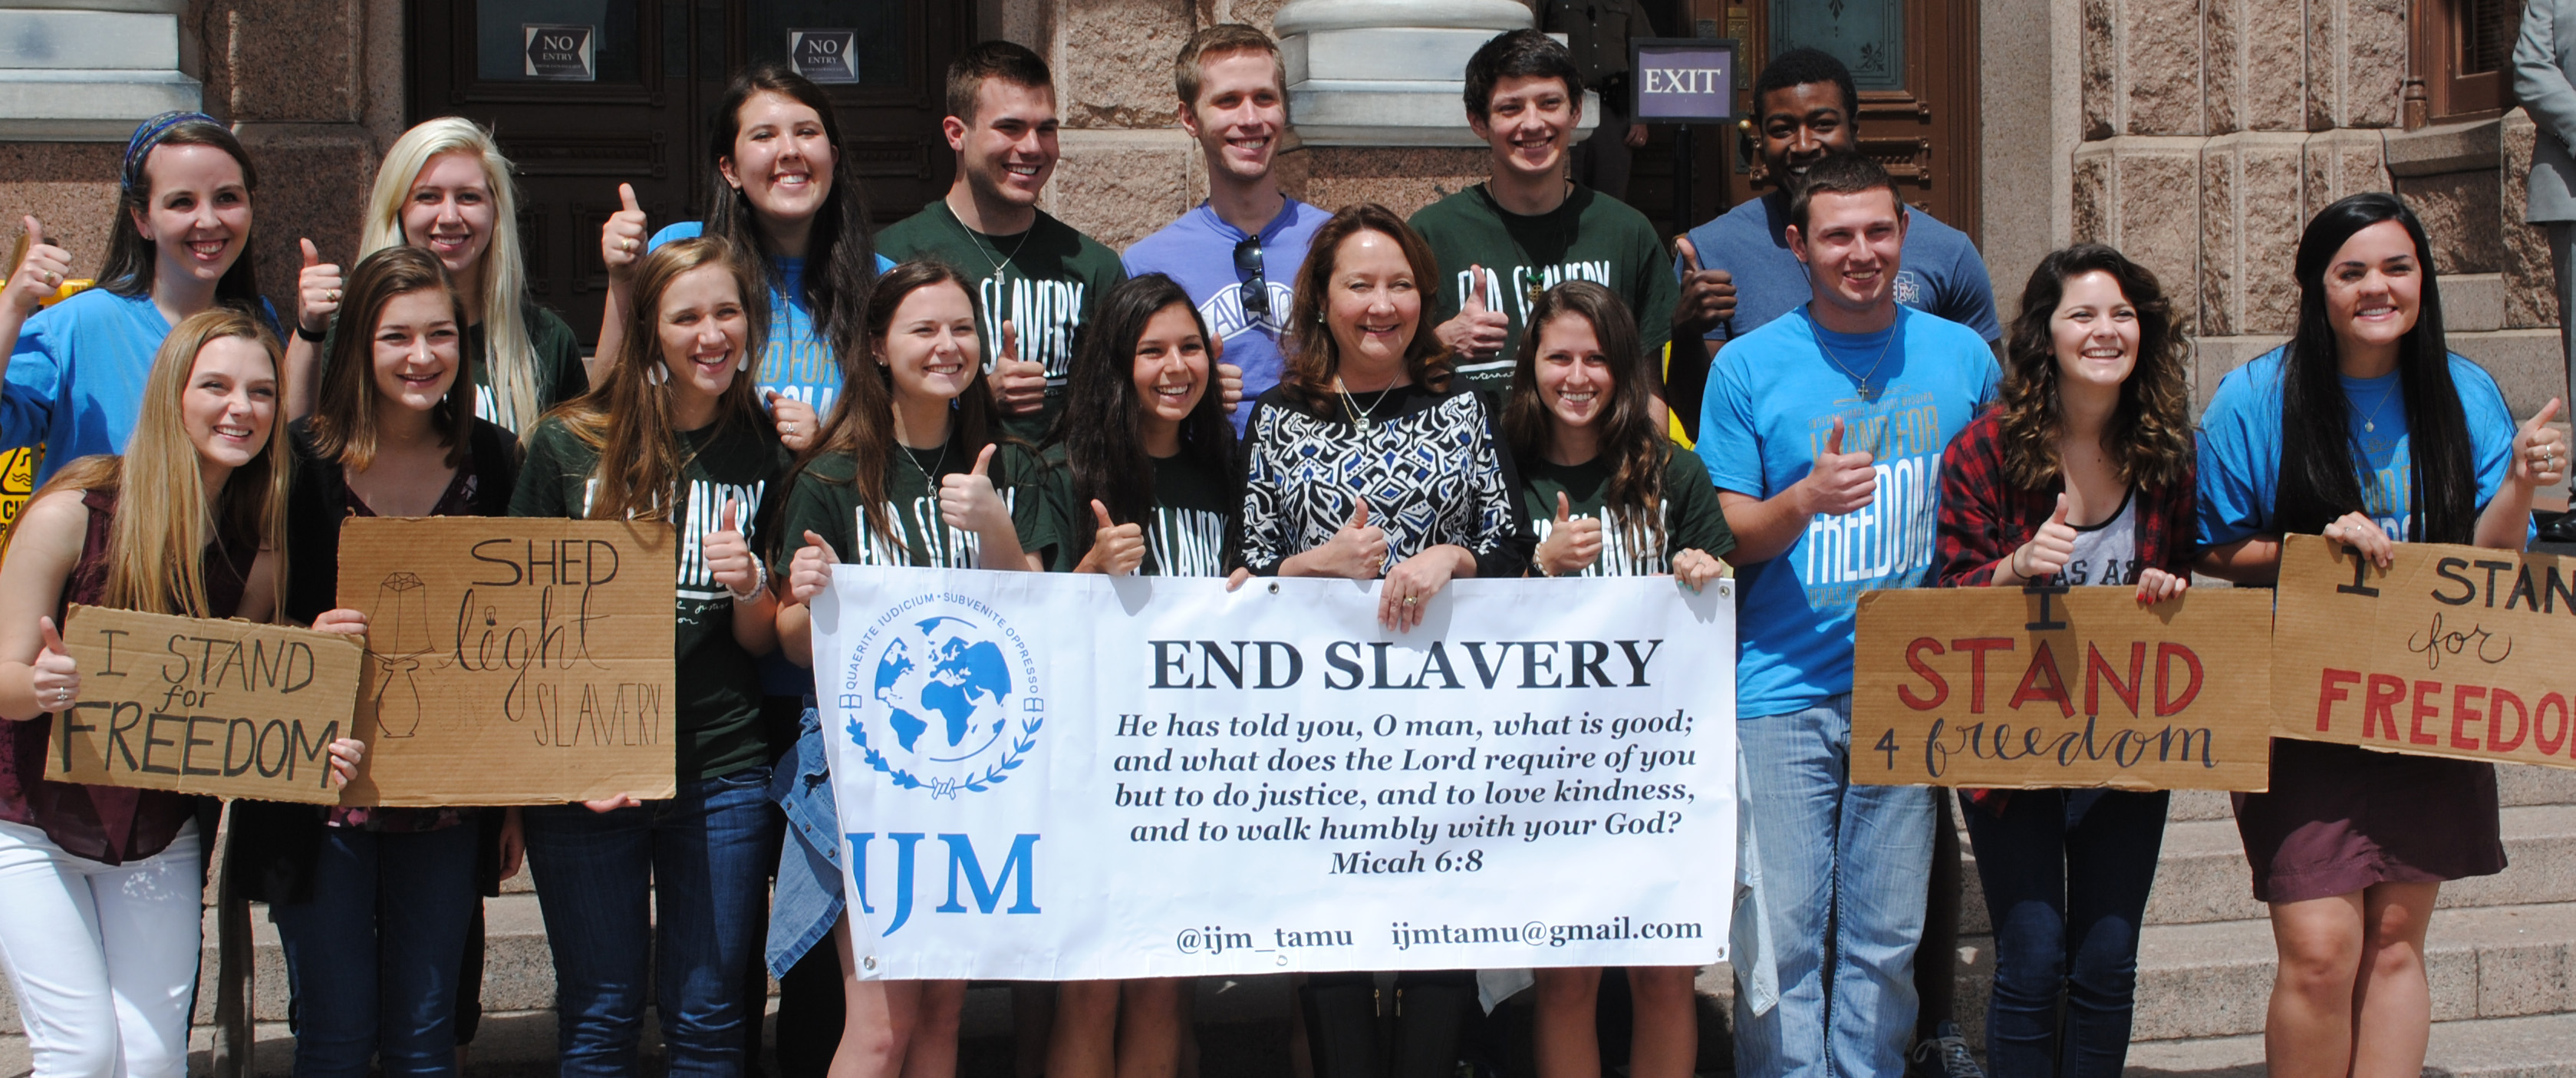 #EndSlaveryAct #Stand4Freedom in Texas